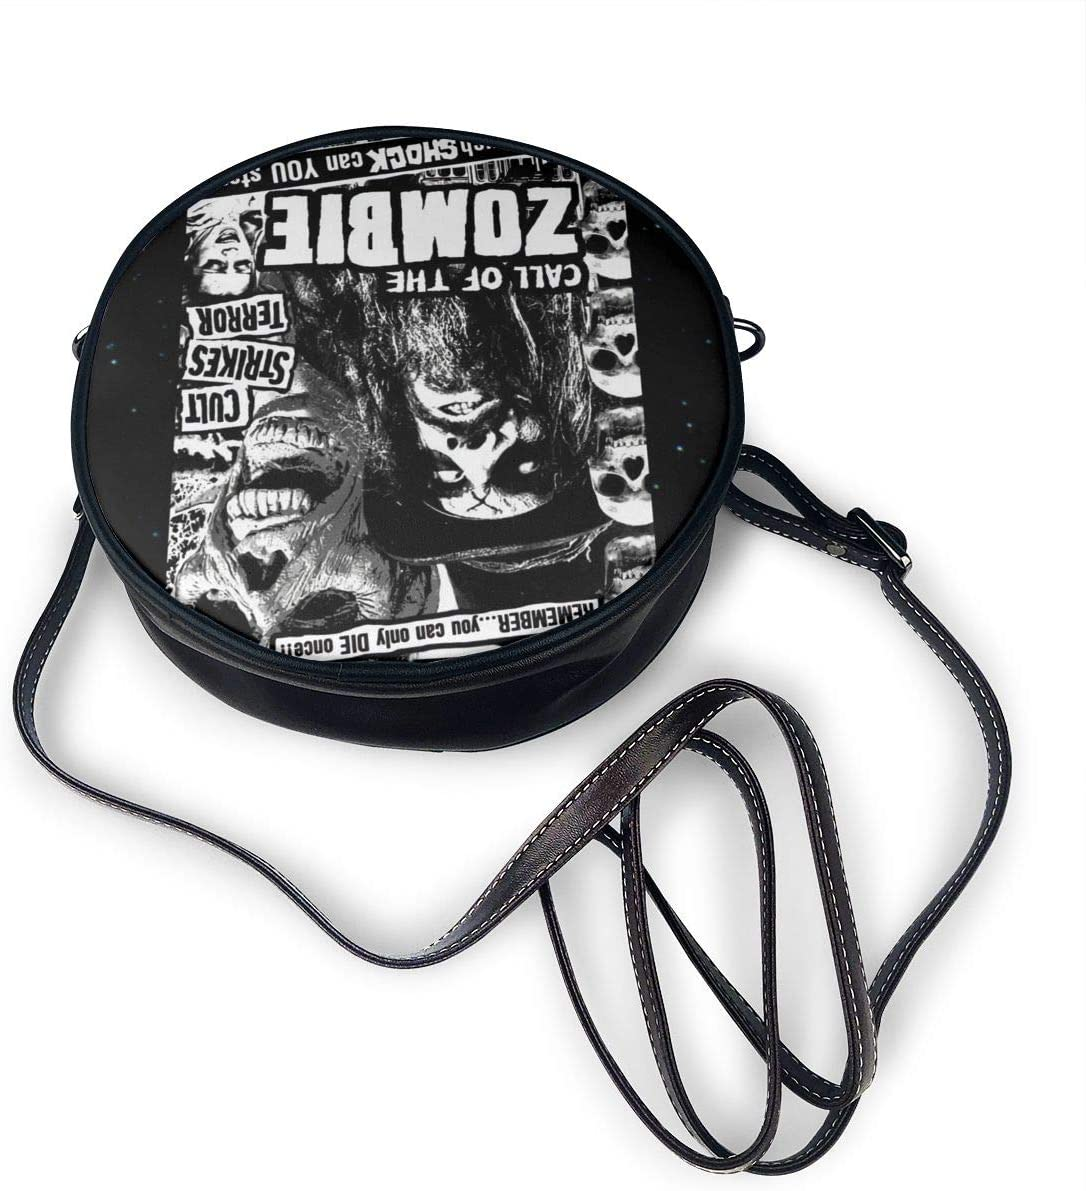 Rob Zombie Womens Round Leather Shoulder Bag Crossbody Purses